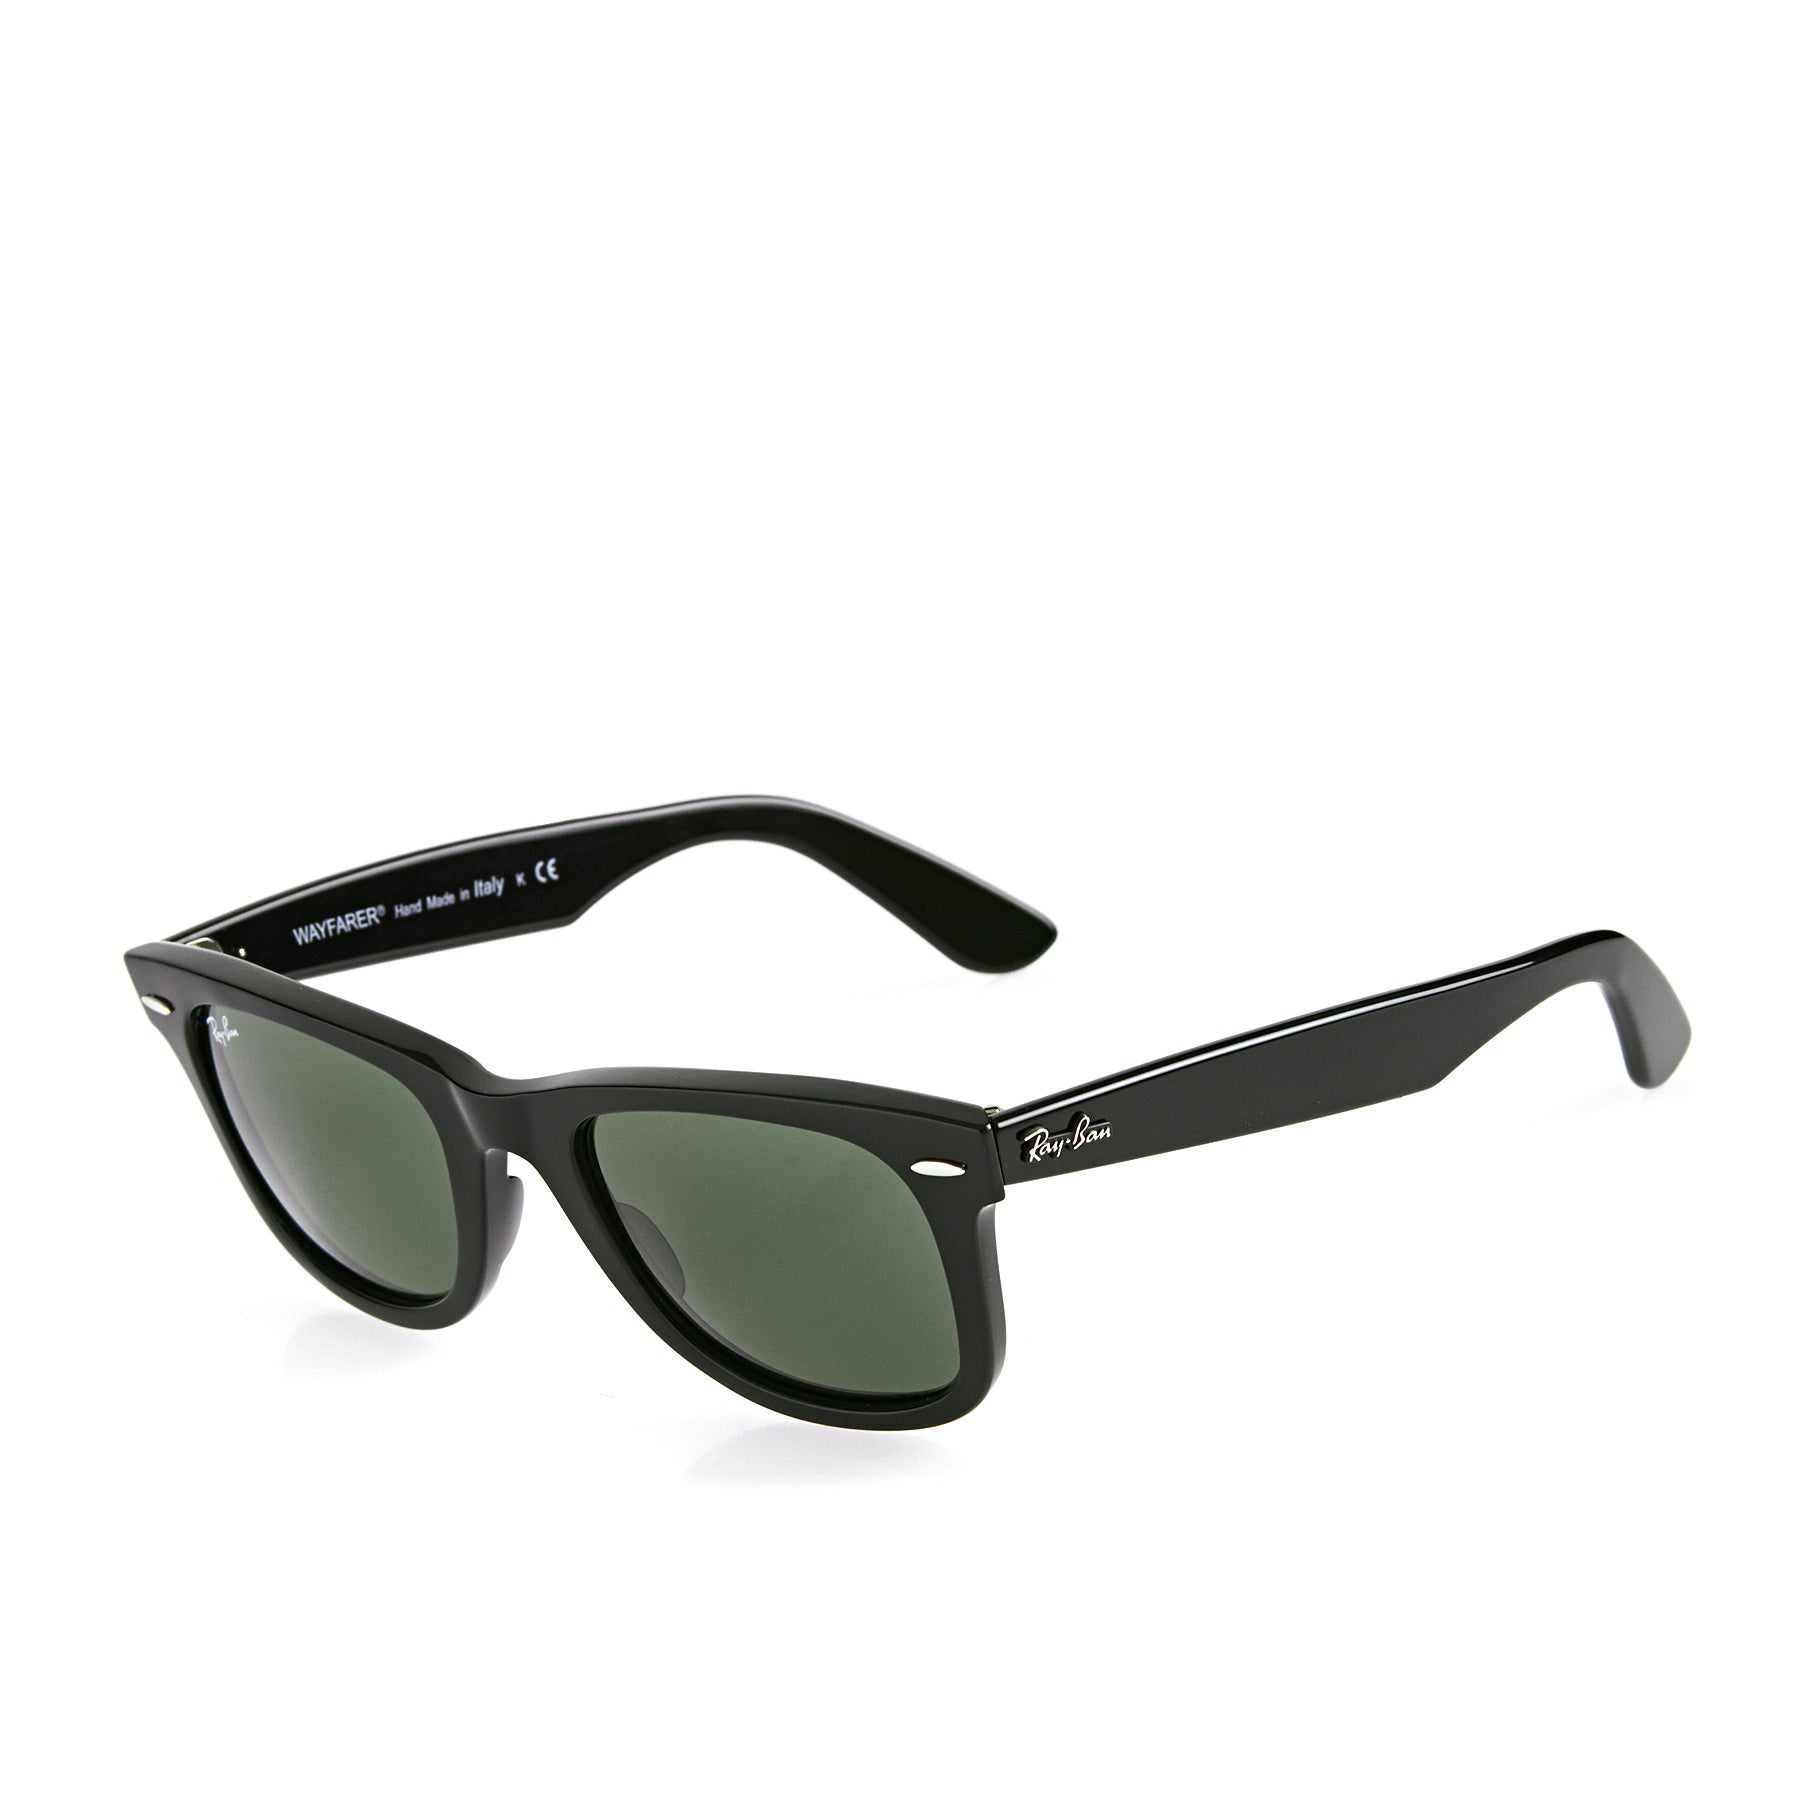 Ray-Ban Wayfarer Sunglasses - Black ~ Crystal Green